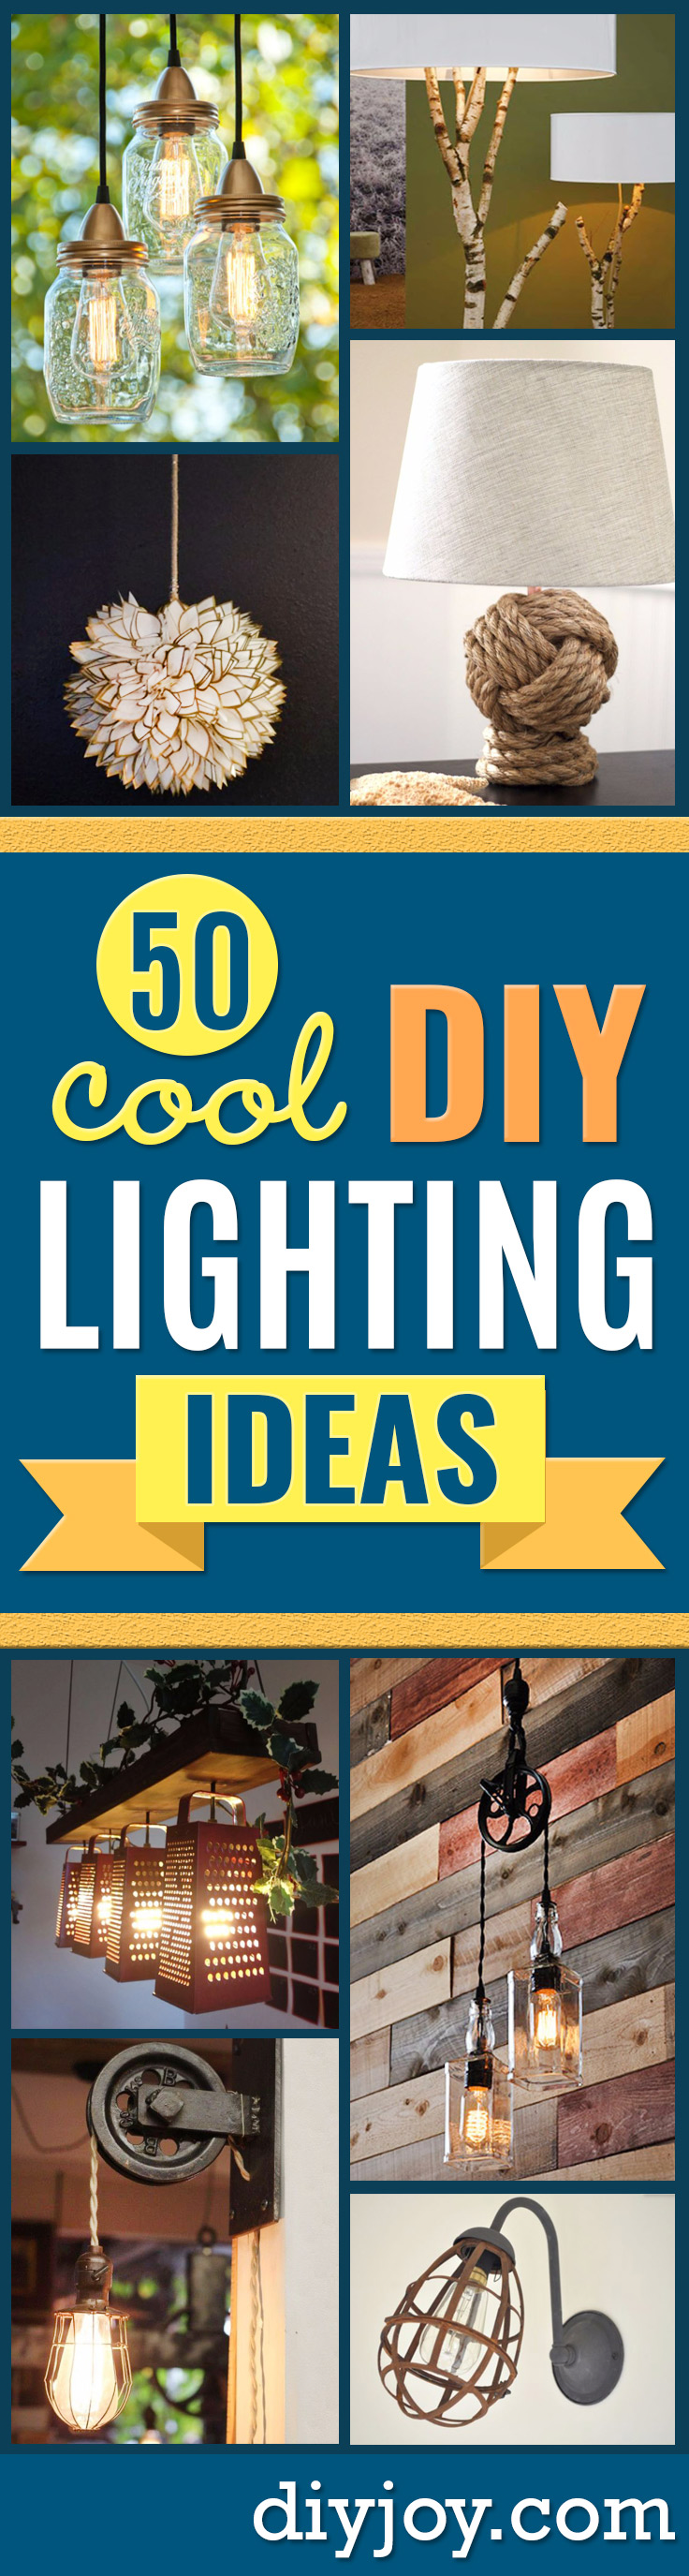 DIY Lighting Ideas and Cool DIY Light Projects for the Home - Easy DIY Ideas for Chandeliers, lights, lamps, awesome pendants and creative hanging fixtures, complete with tutorials with instructions. Cheap do it yourself lighting tutorials for indoor - bedroom, living room, bathroom, kitchen DIY Projects and Crafts for Women and Men